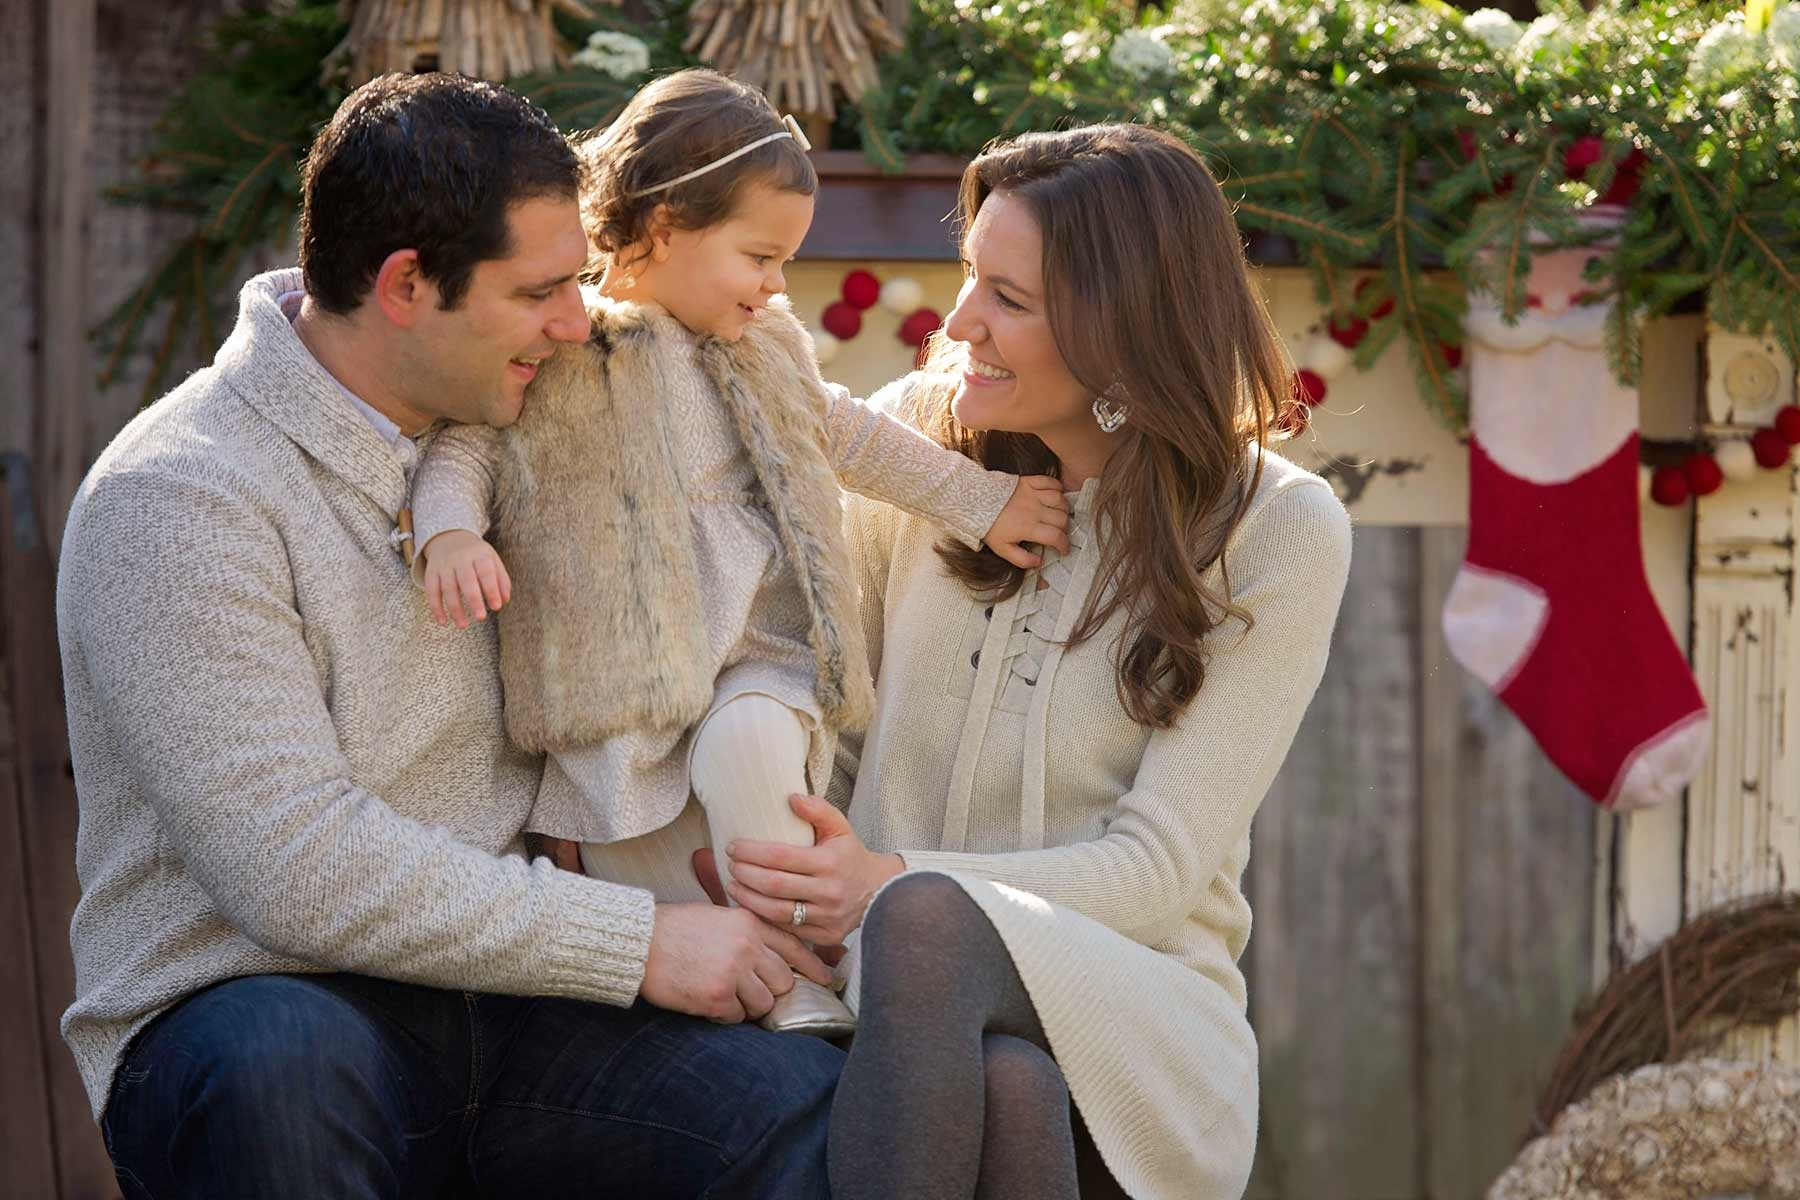 family in neutral outfits sit on trunk in holiday scene looking at daughter